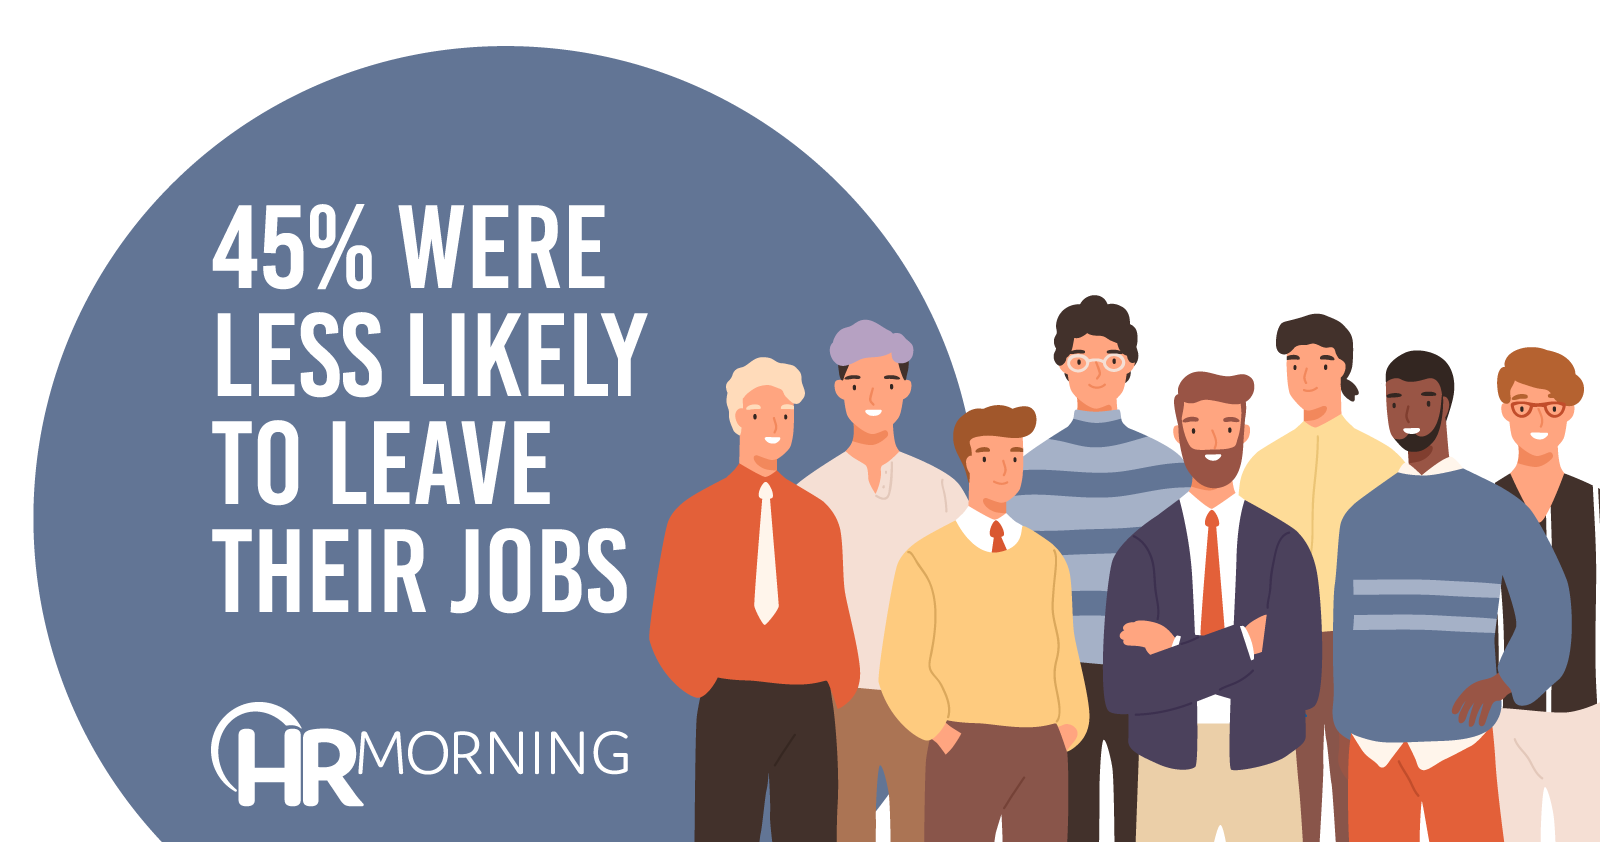 45% Were Less Likely To Leave Their Jobs